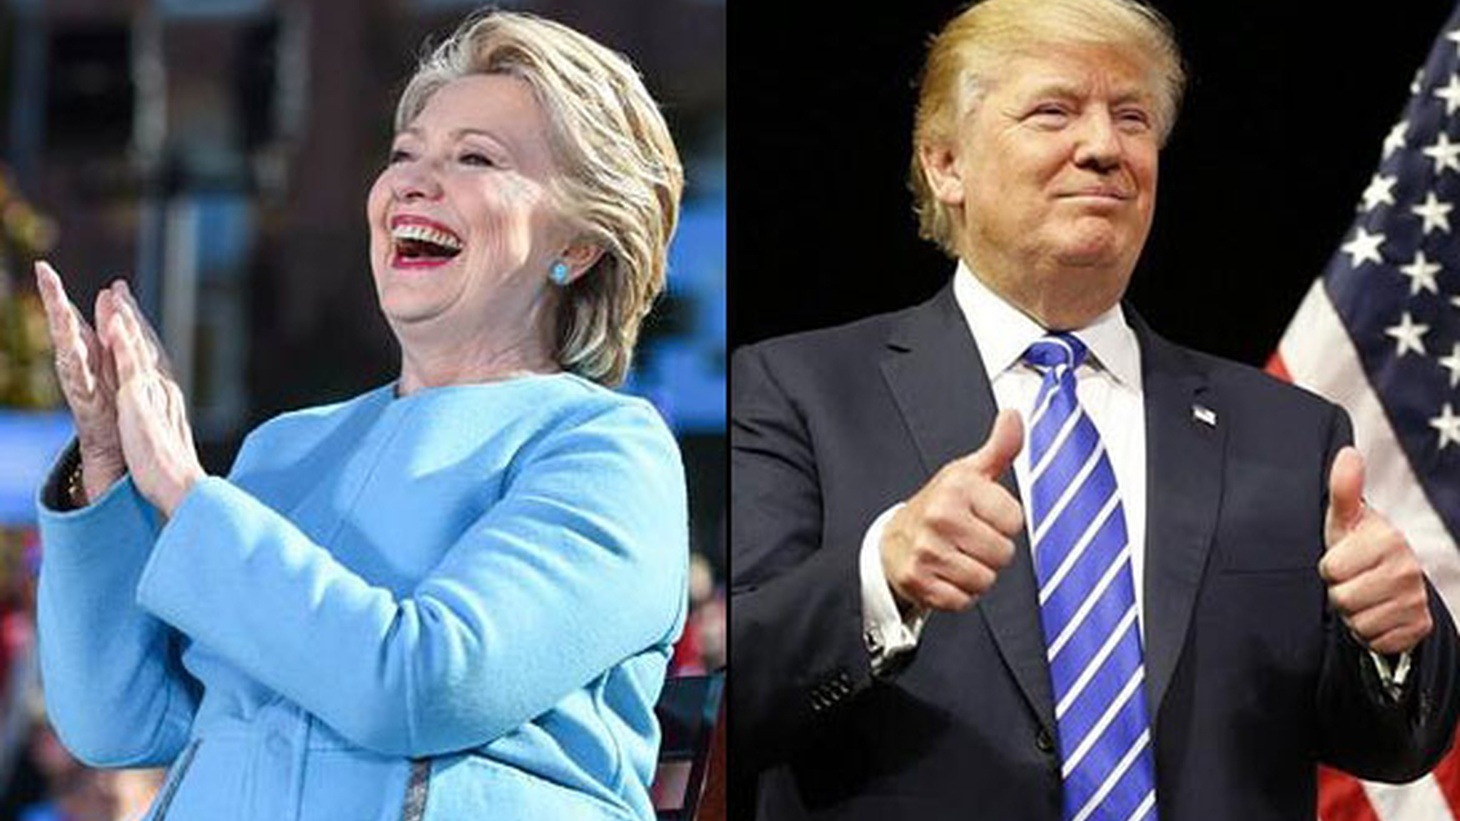 """During the Republican primaries, Donald Trump was happy to point at polls that showed him defeating a crowd of professional politicians. Now, most polls indicate that he won't beat Hillary Clinton. He calls them """"phony."""" We ask prominent pollsters about who to believe."""